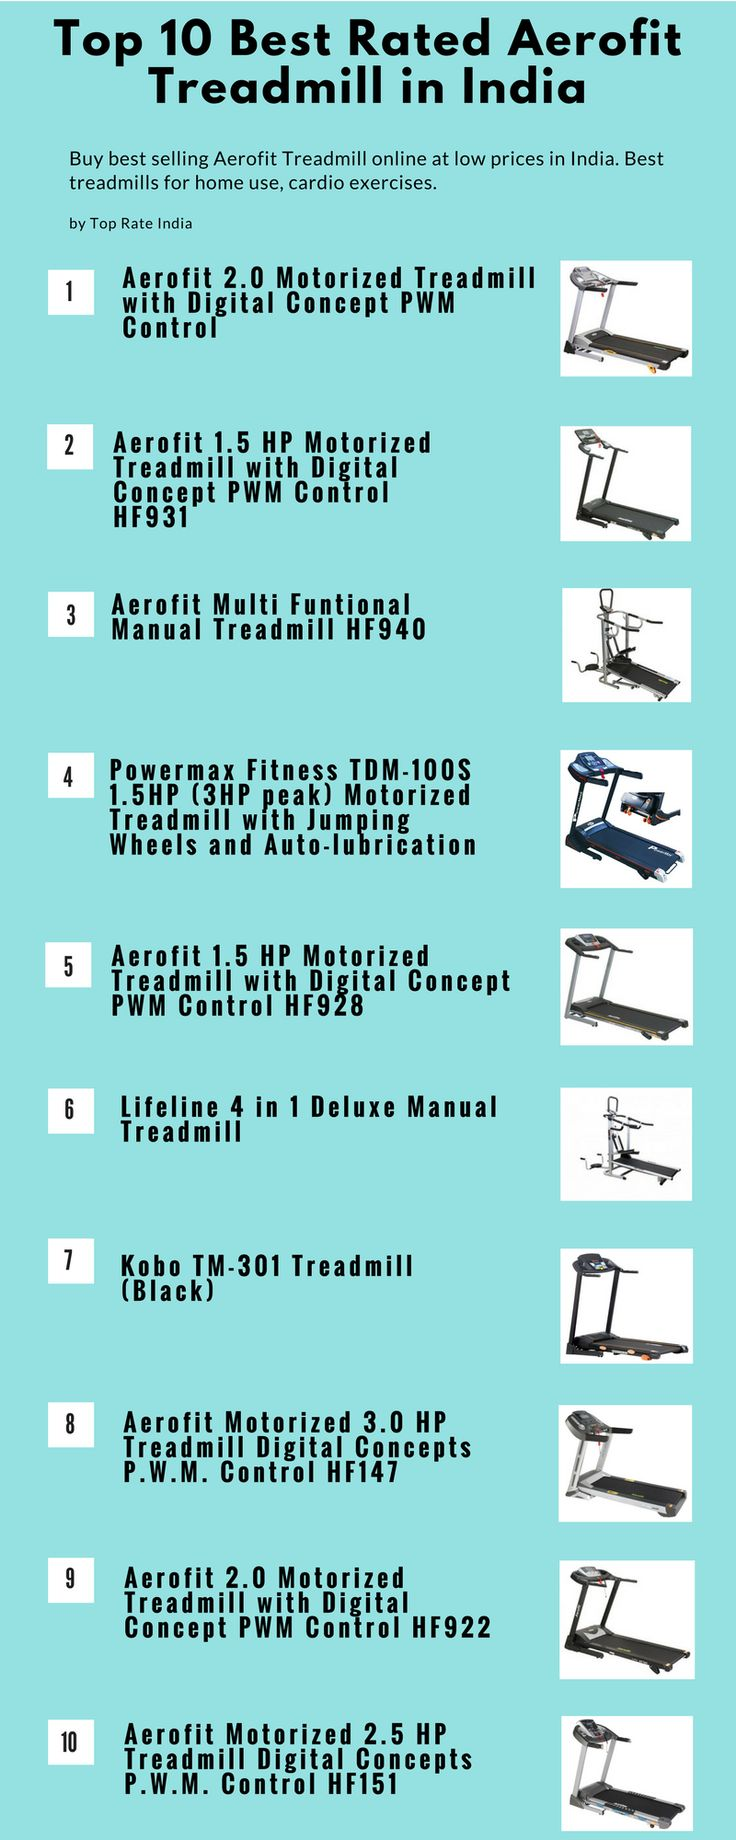 Buy best selling Aerofit Treadmill online at low prices in India. Best treadmills for home use, cardio exercises. For more visit our Website http://toprateindia.com/top-10-best-rated-aerofit-treadmill-in-india/